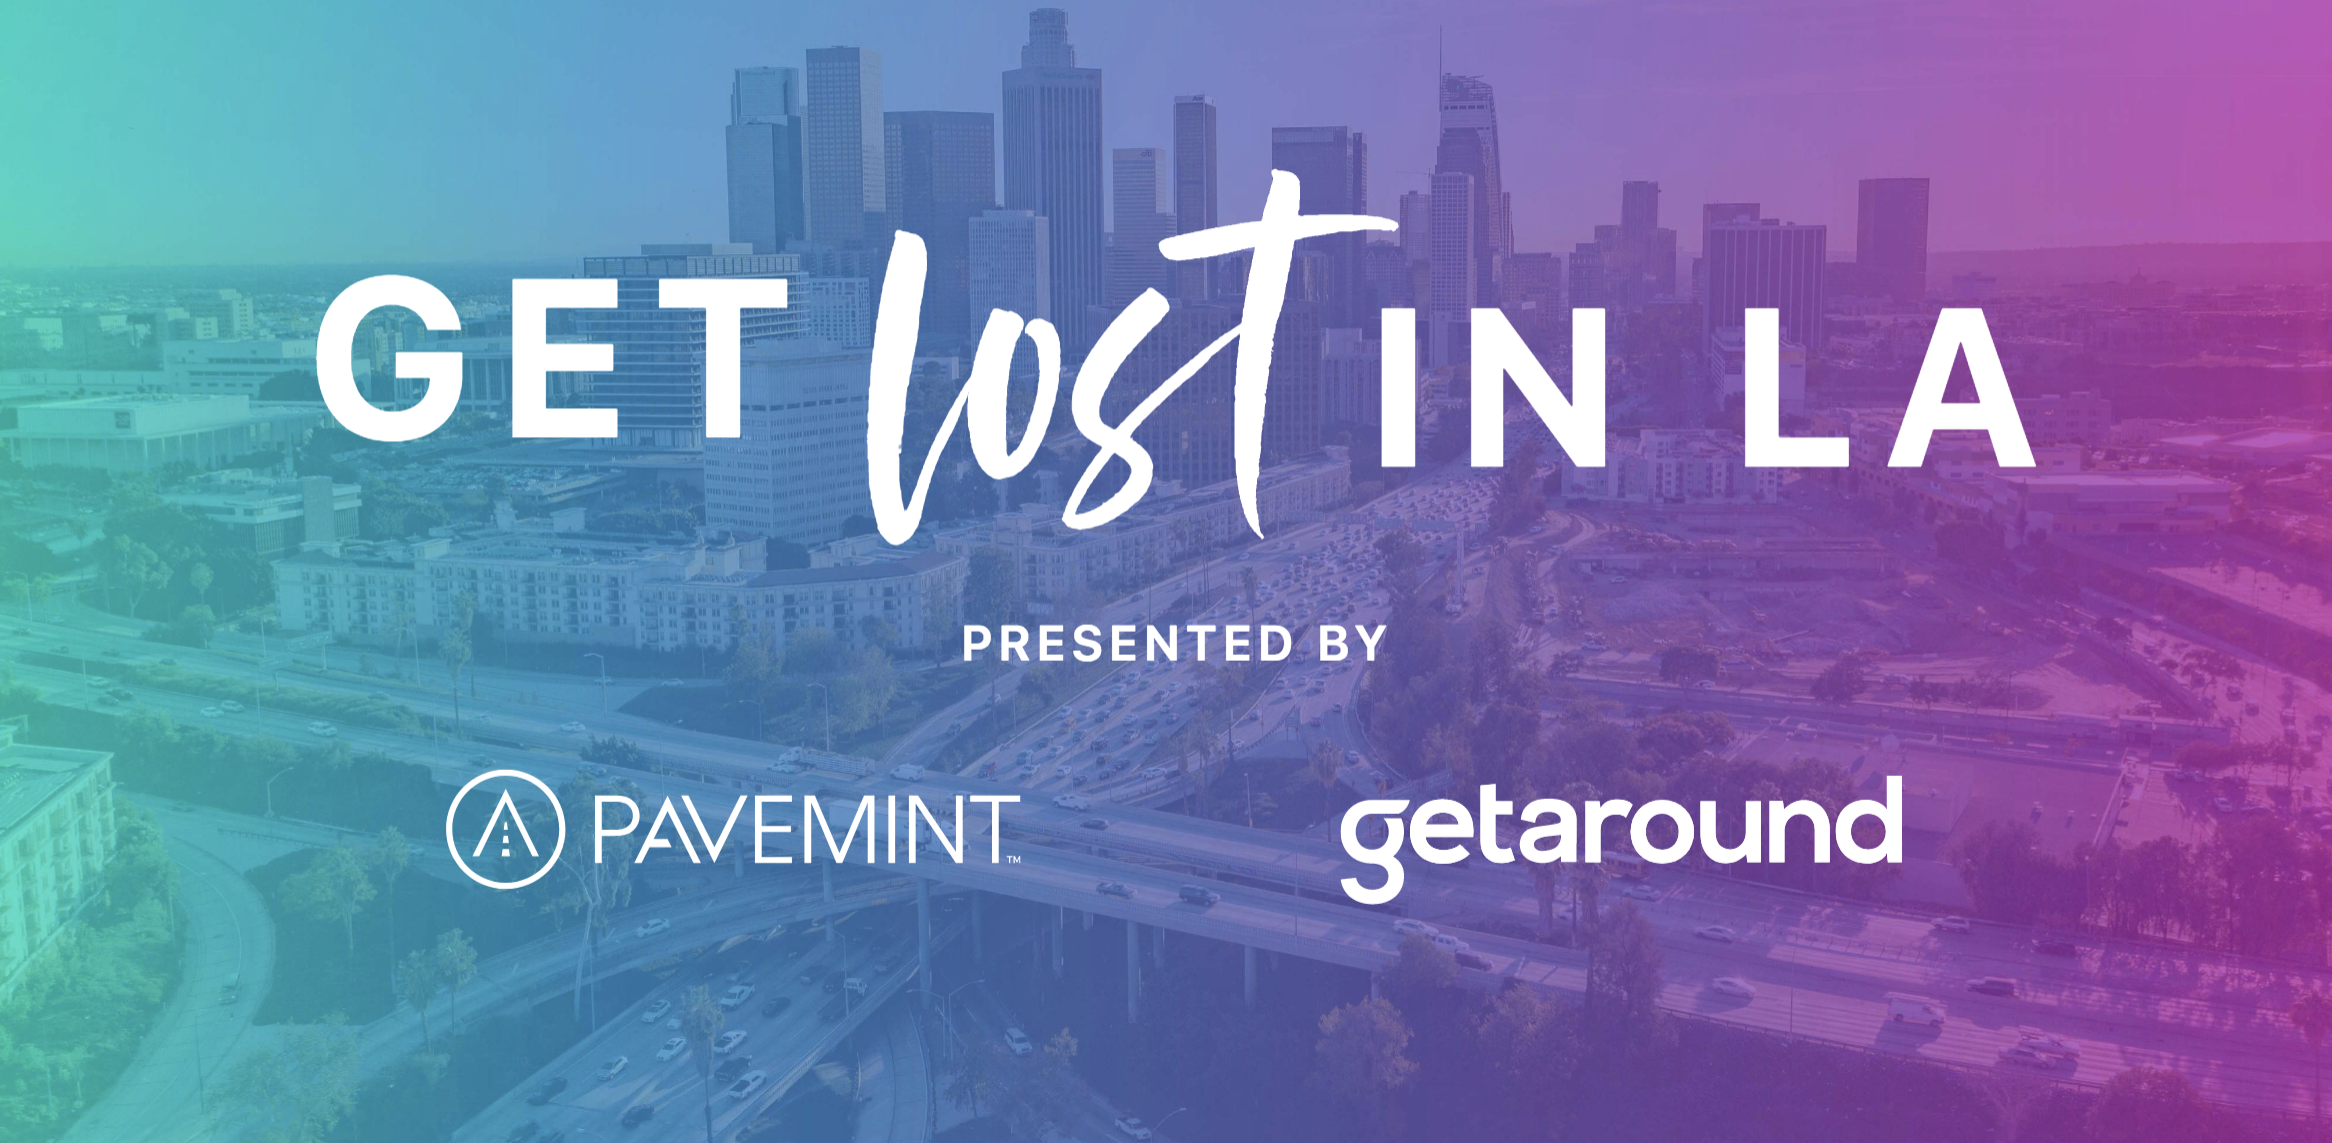 Get Lost in LA with Getaround & Pavemint